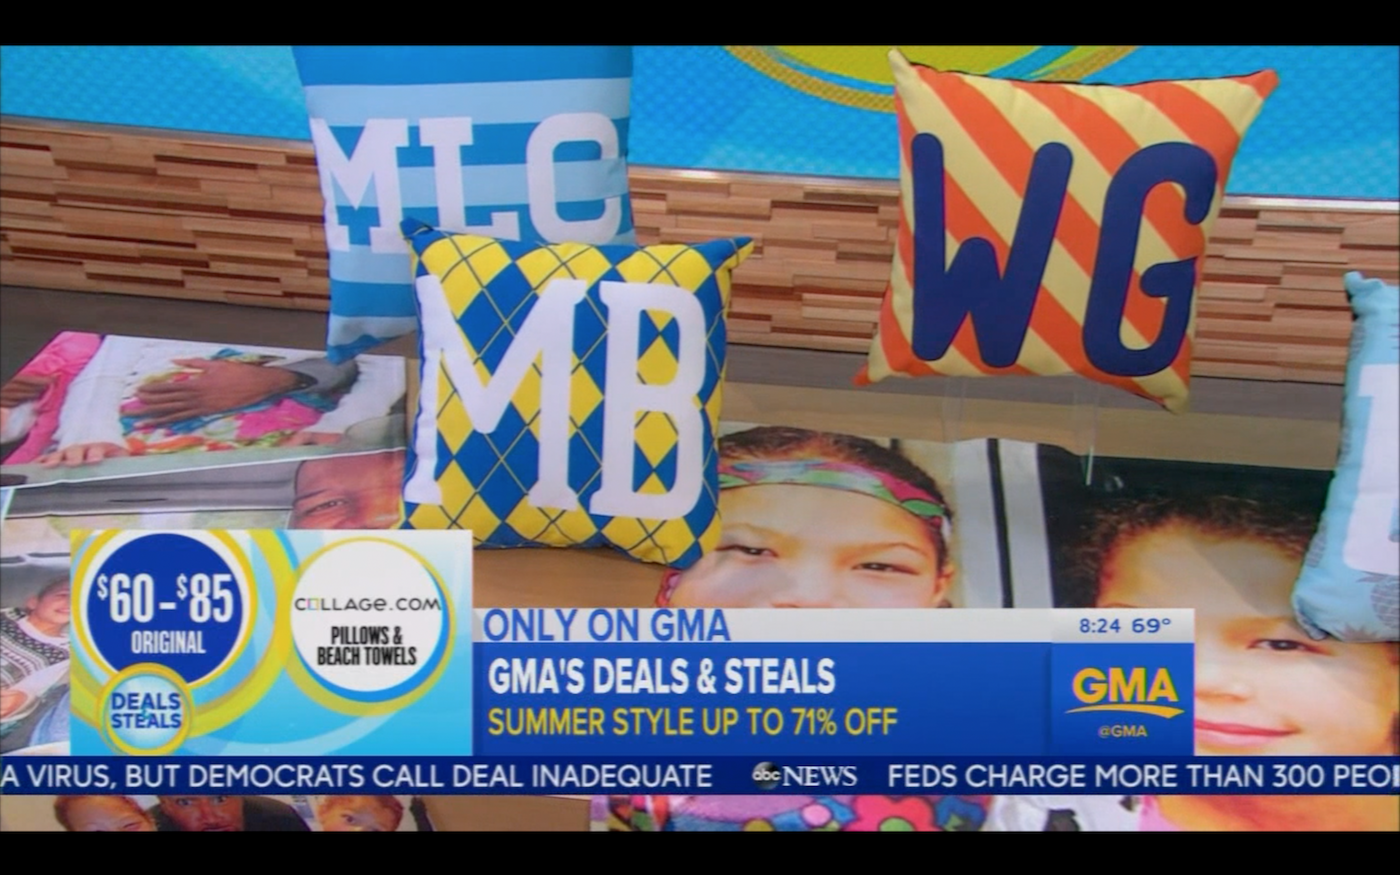 Collage.com on Good Morning America